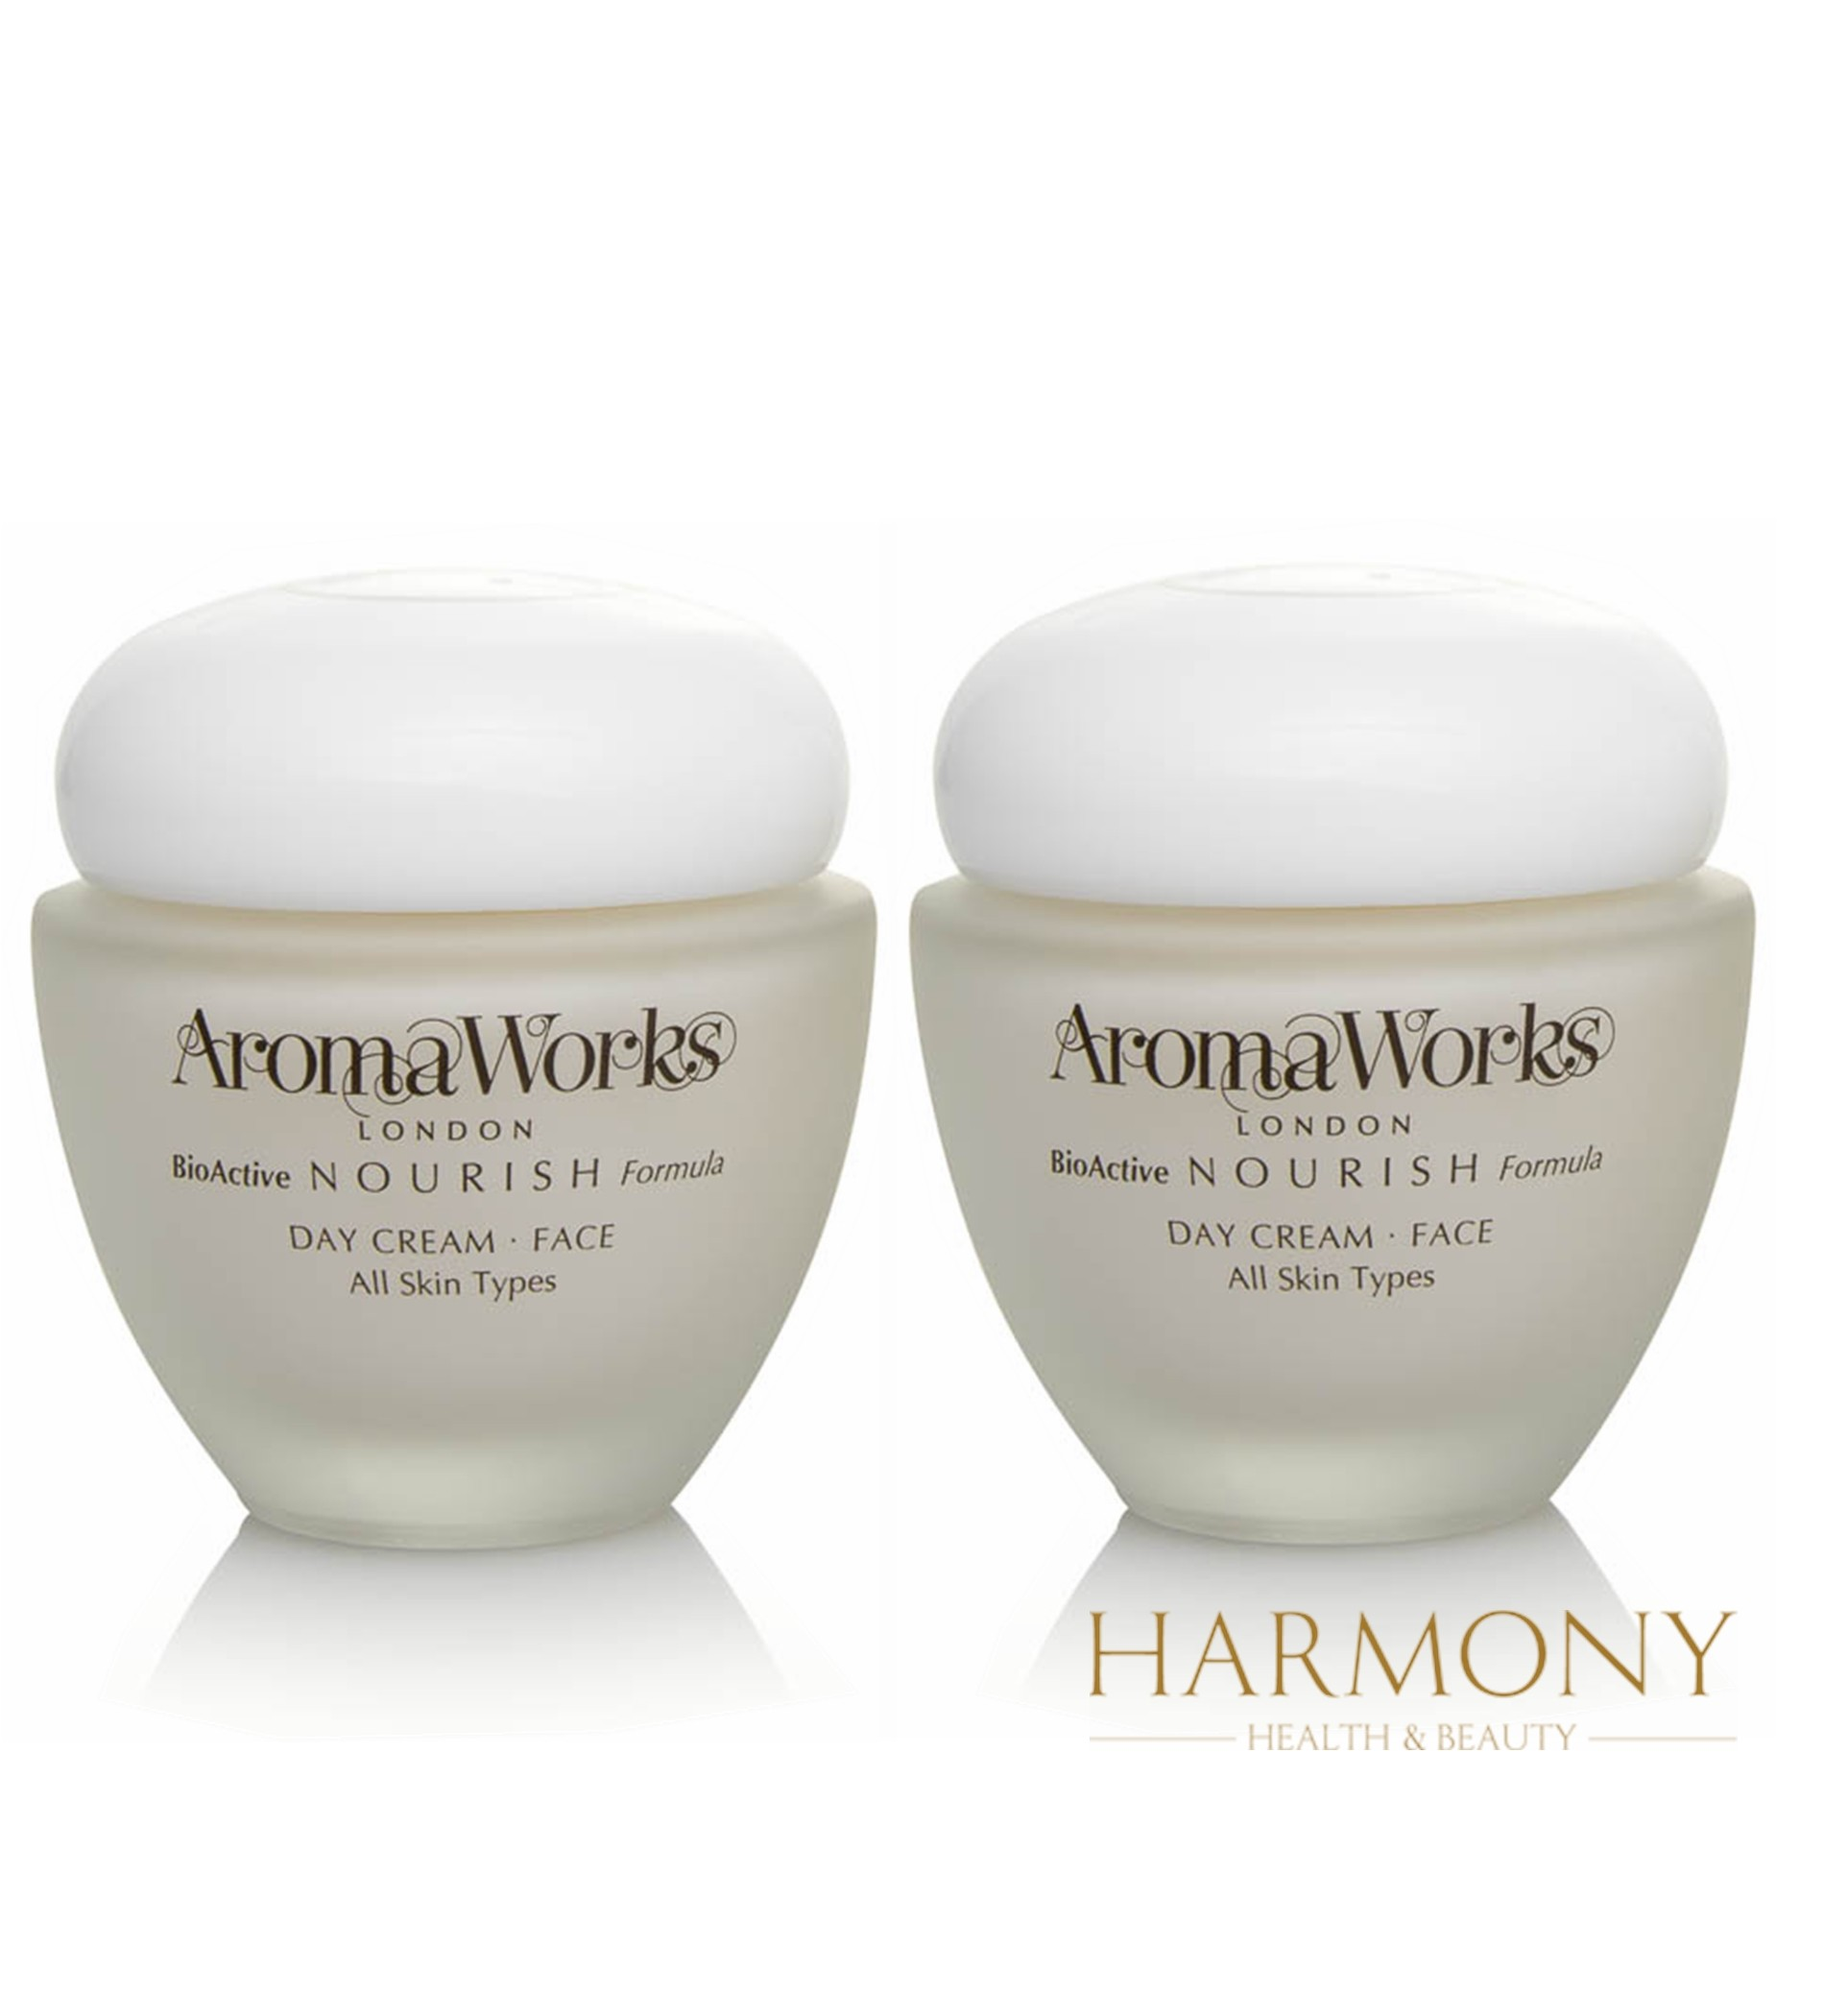 2 x AromaWorks Nourish Day Cream